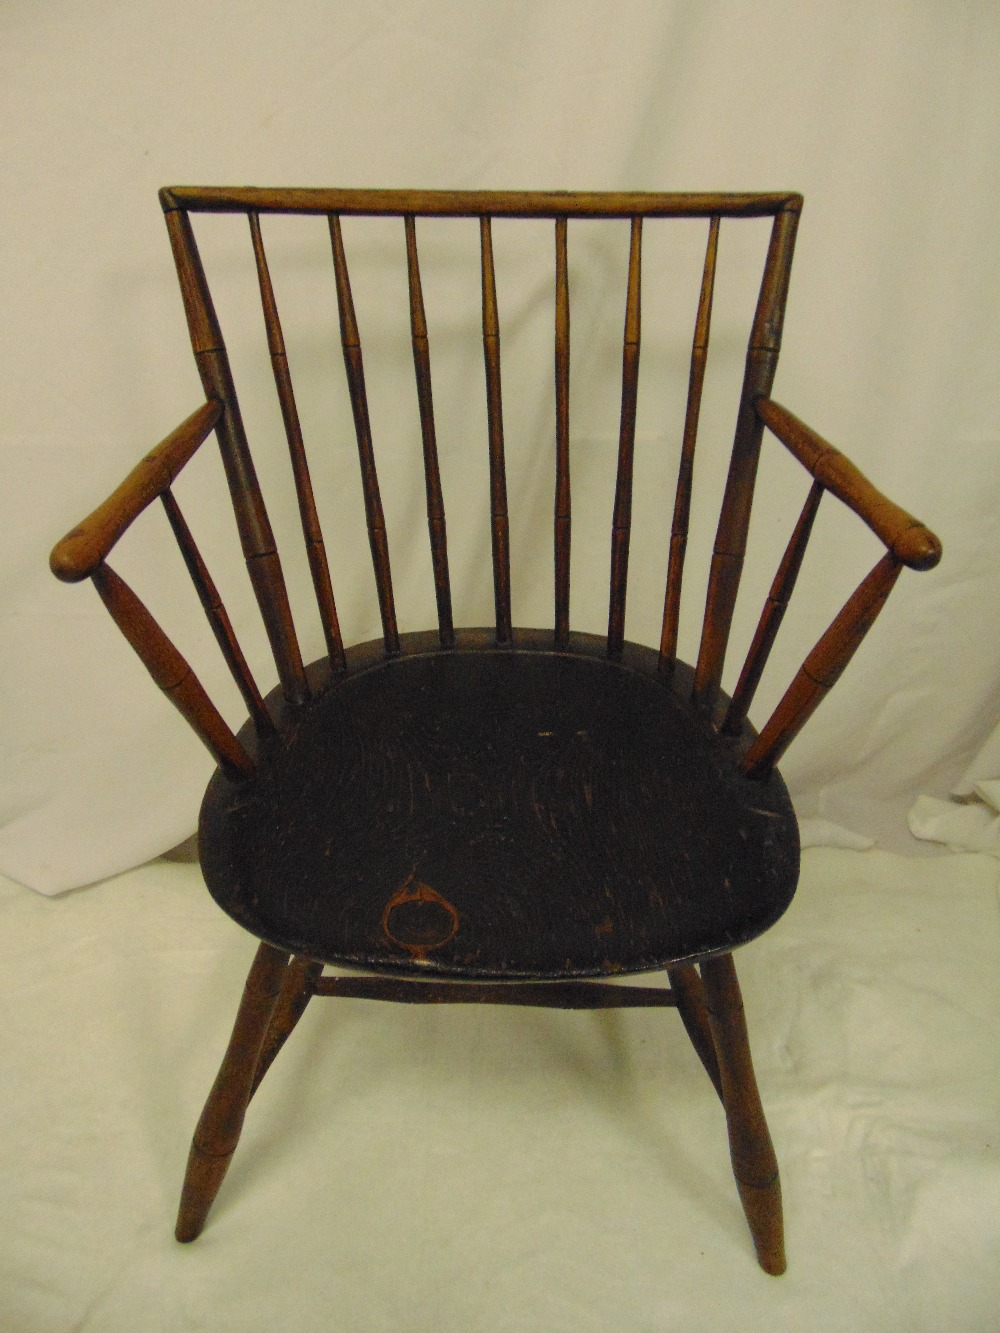 Lot 22 - An early oak spindle back chair on four turned cylindrical legs